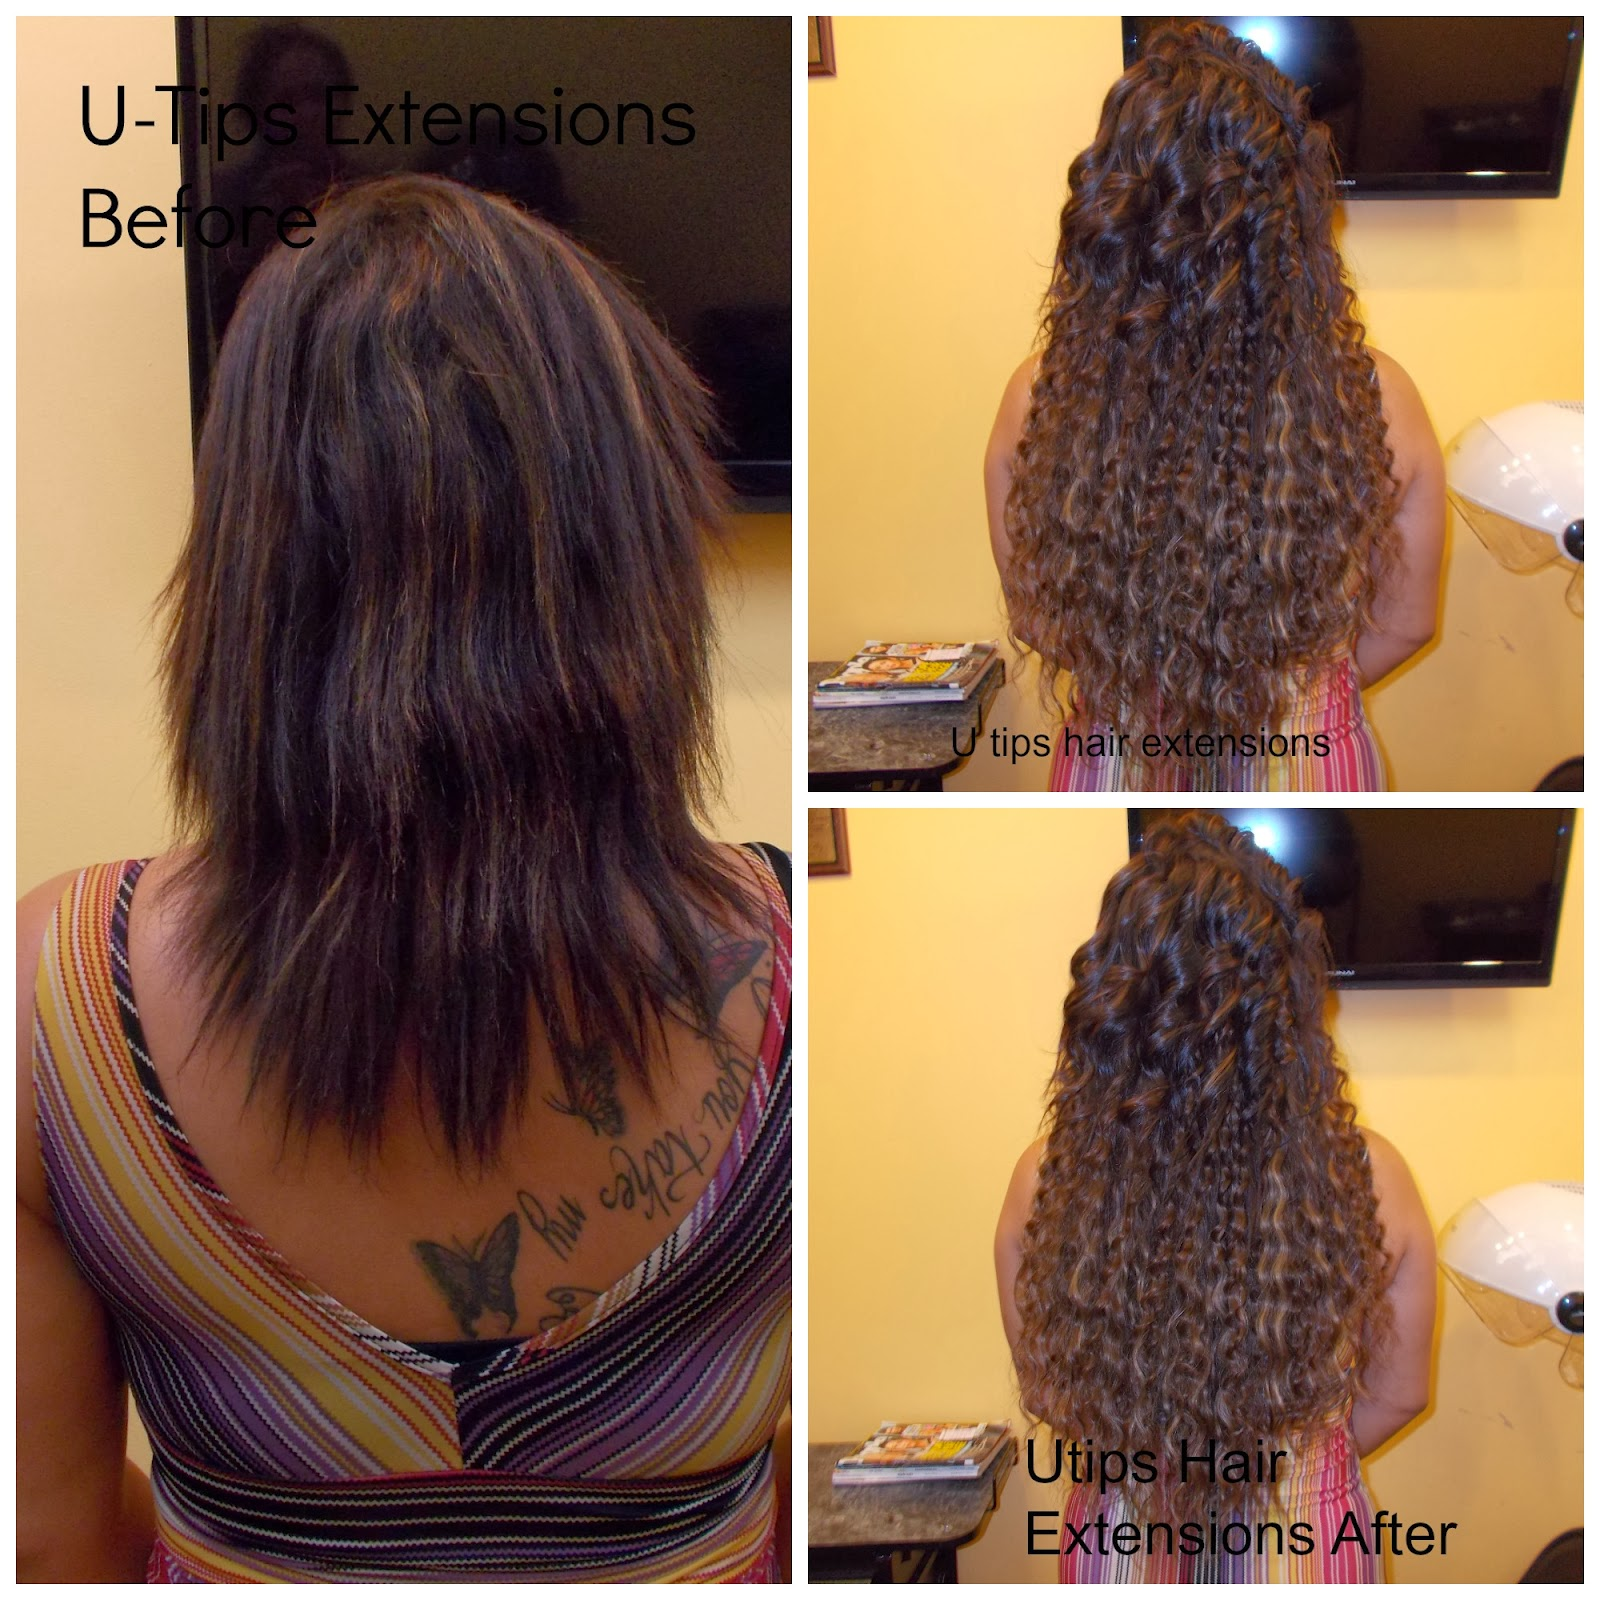 Shallamars hair solutions reviews shallamars hair sollutions visit our website for more information or like us on face book we specialize in all aspects of hair care including hair extensions pmusecretfo Gallery